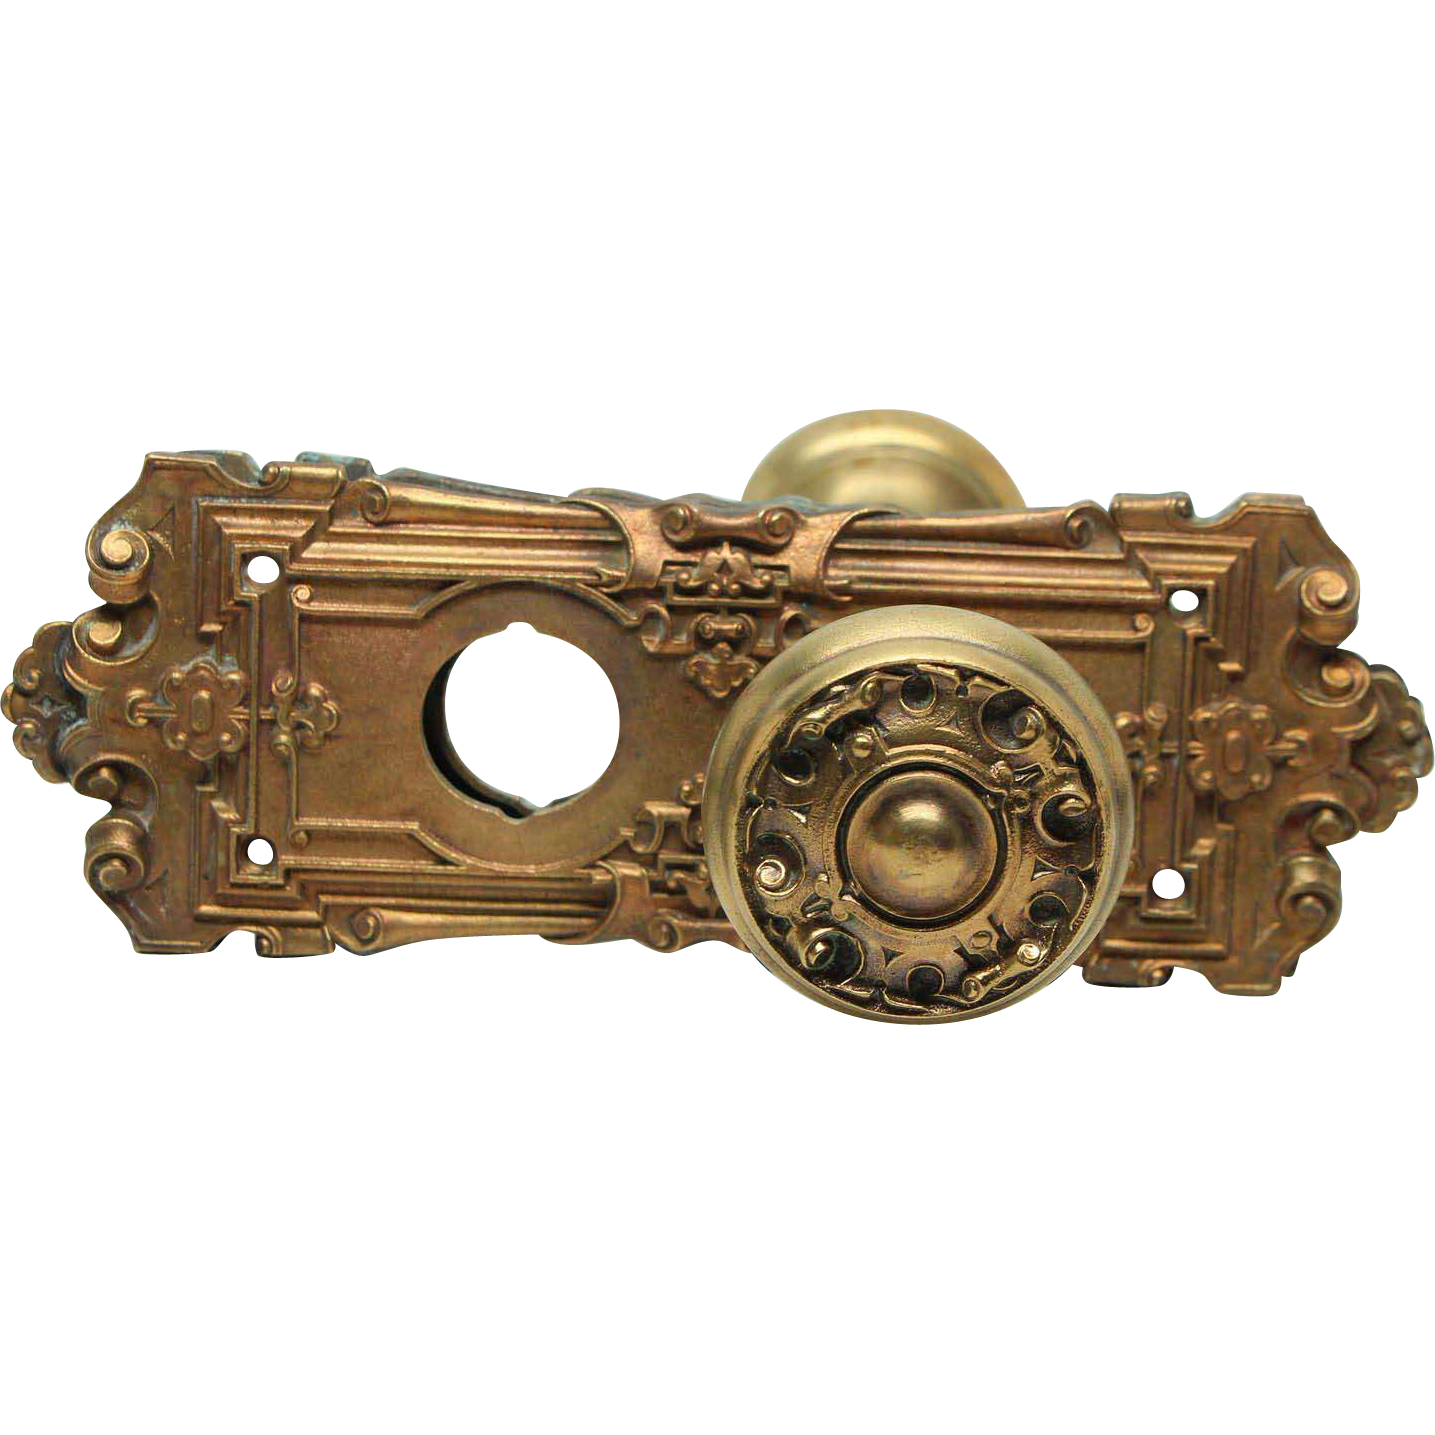 Ornate Gothic brass knob set with key hole cut out